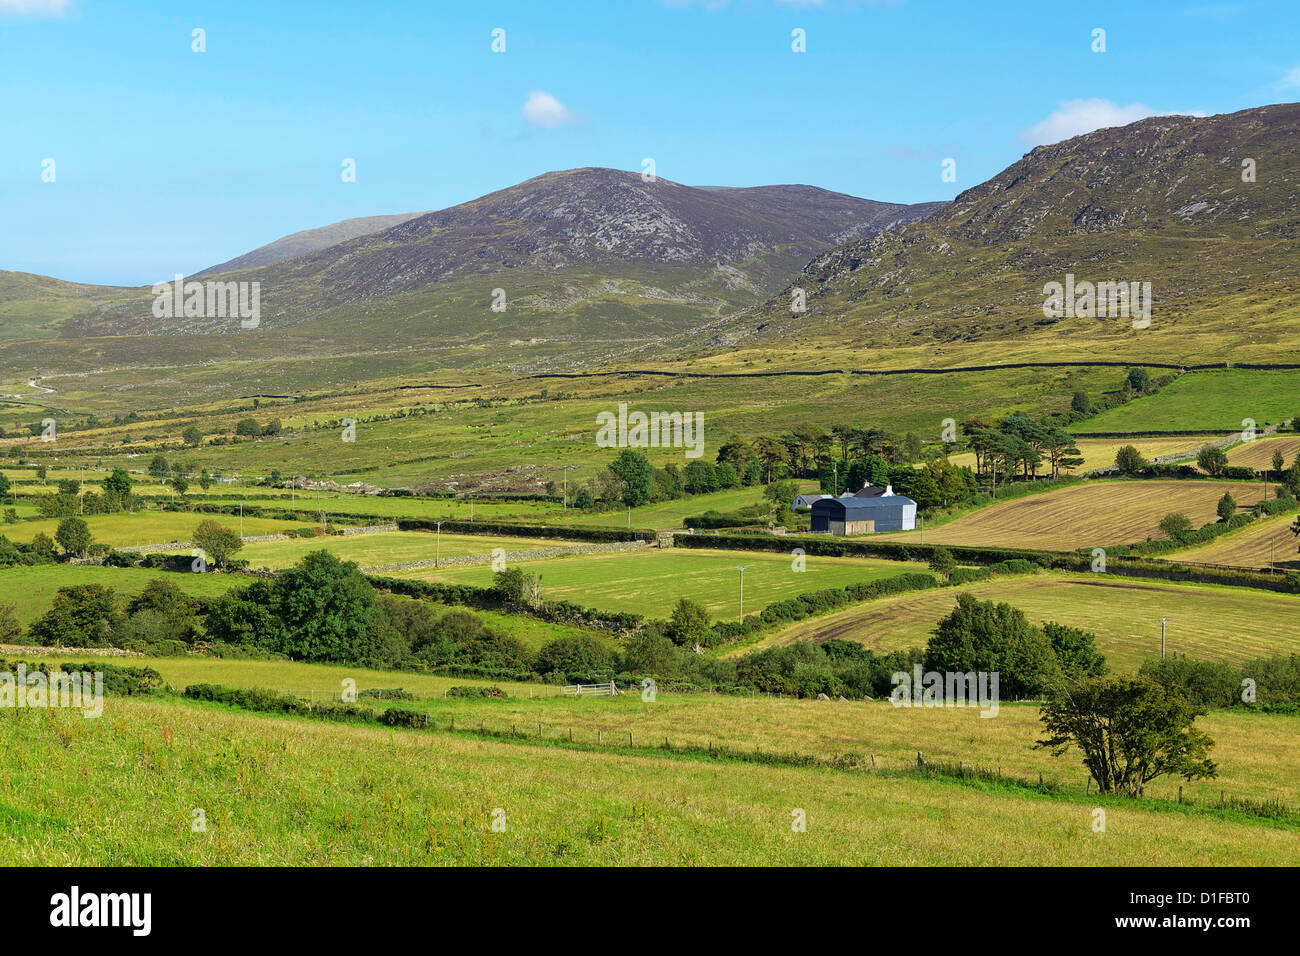 Luke's Mountain, Mourne Mountains, County Down, Ulster, Northern Ireland, United Kingdom, Europe - Stock Image